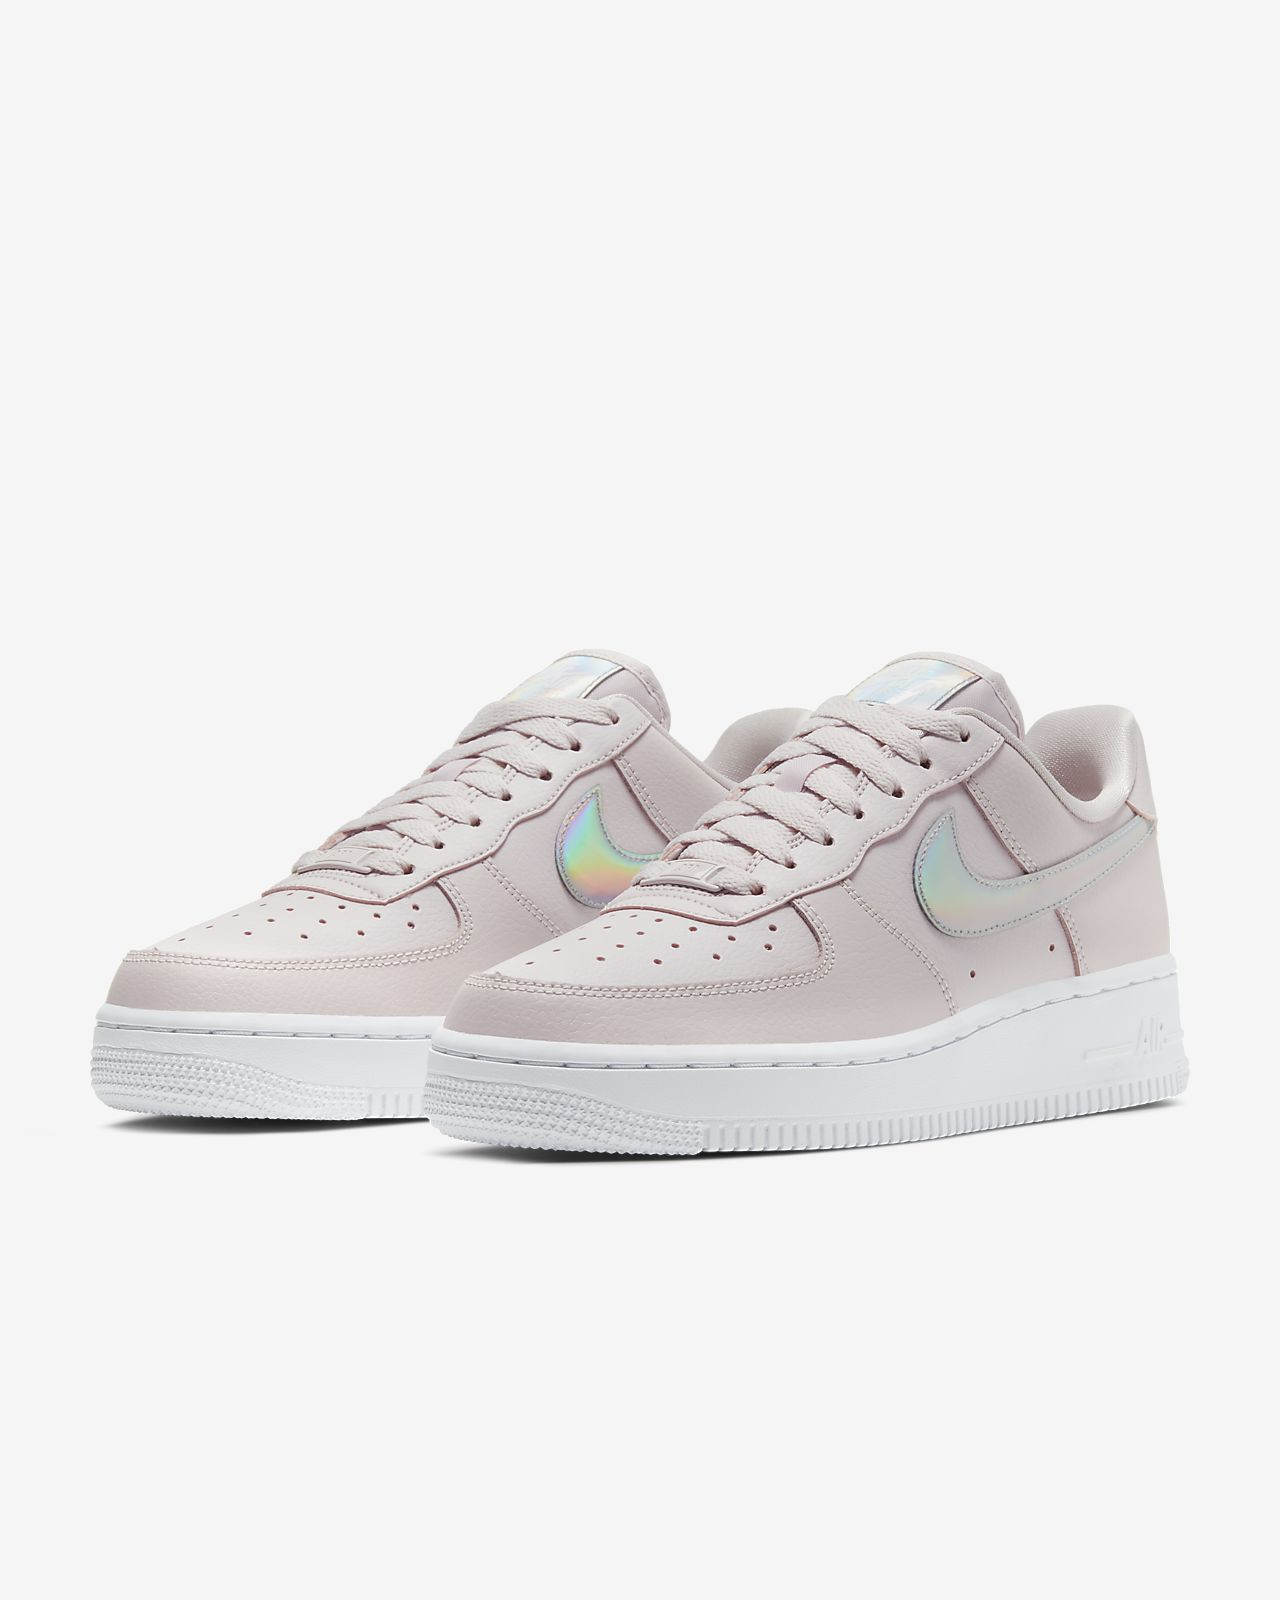 Nike Air Force 1 '07 Essential Women's Shoe